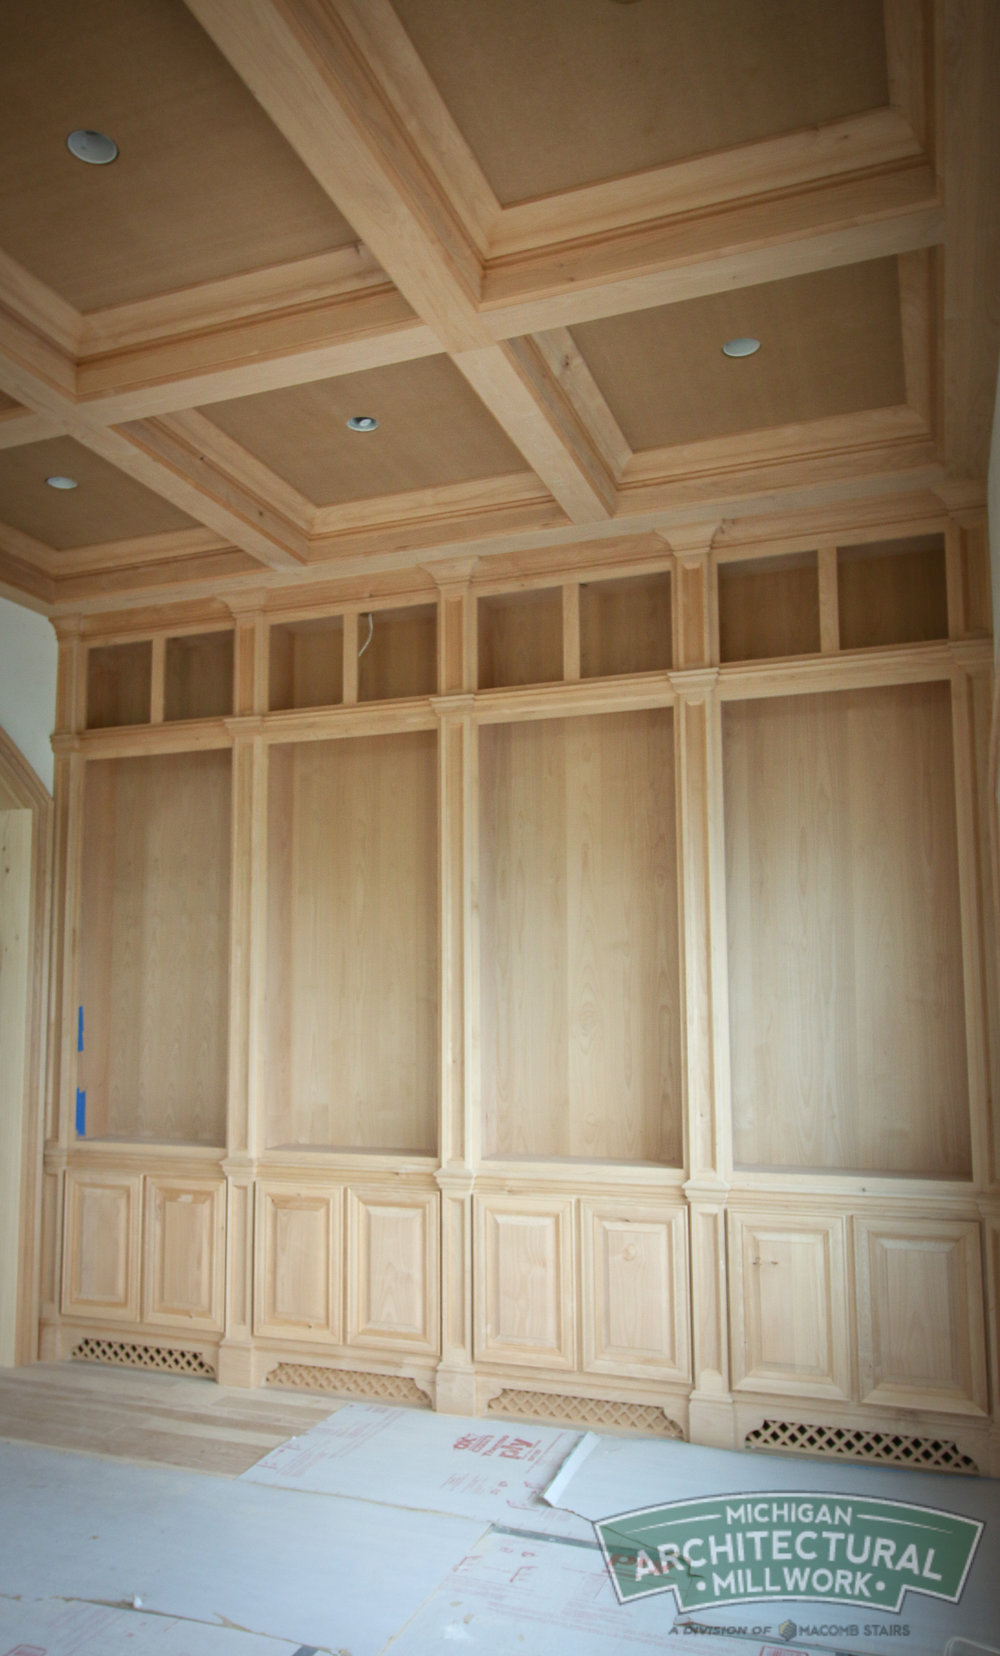 Michigan Architectural Millwork- Moulding and Millwork Photo-30.jpg